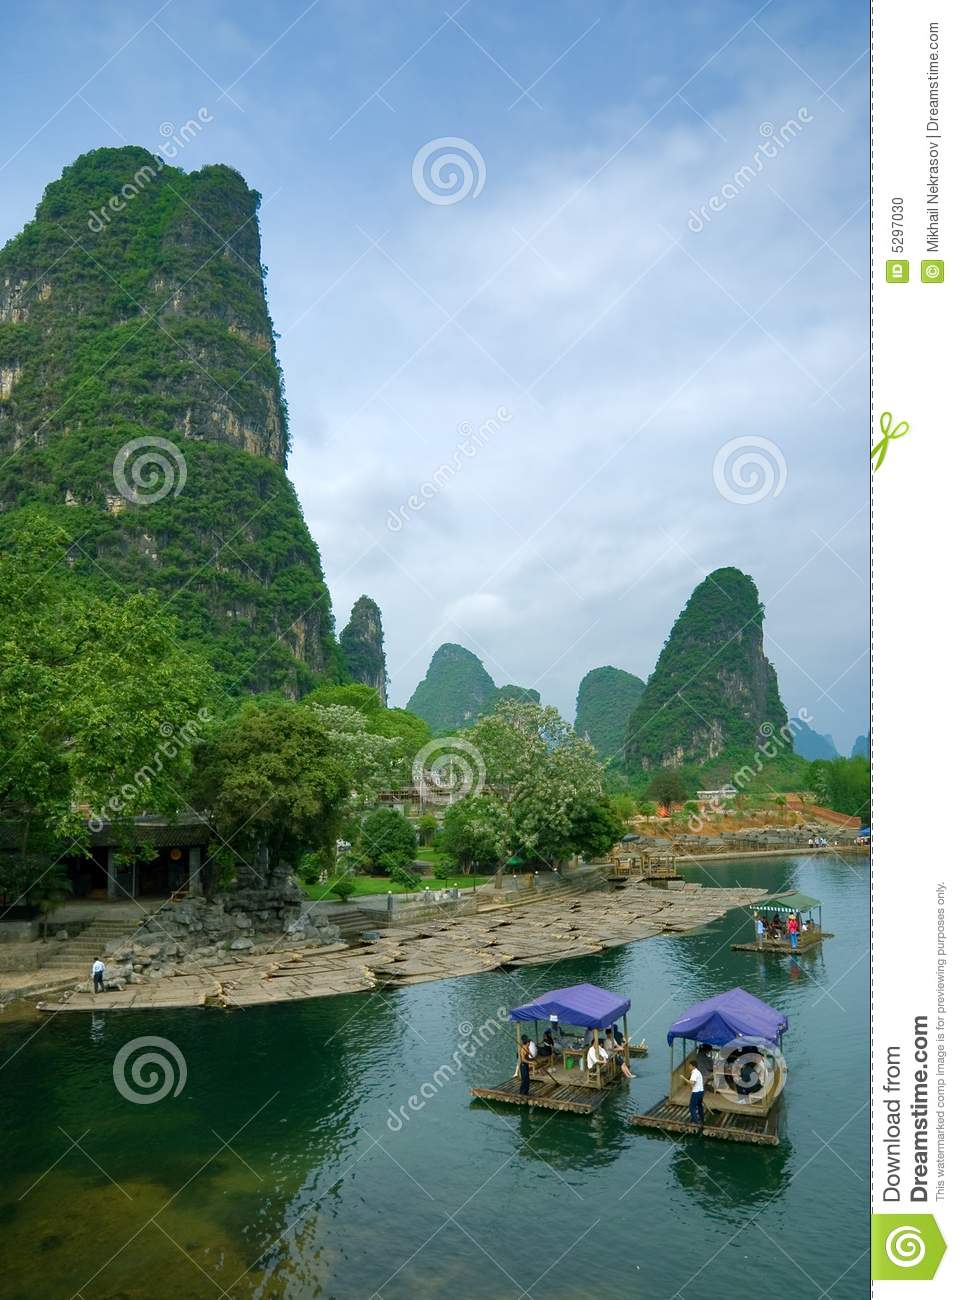 Bamboo raft at the Li river